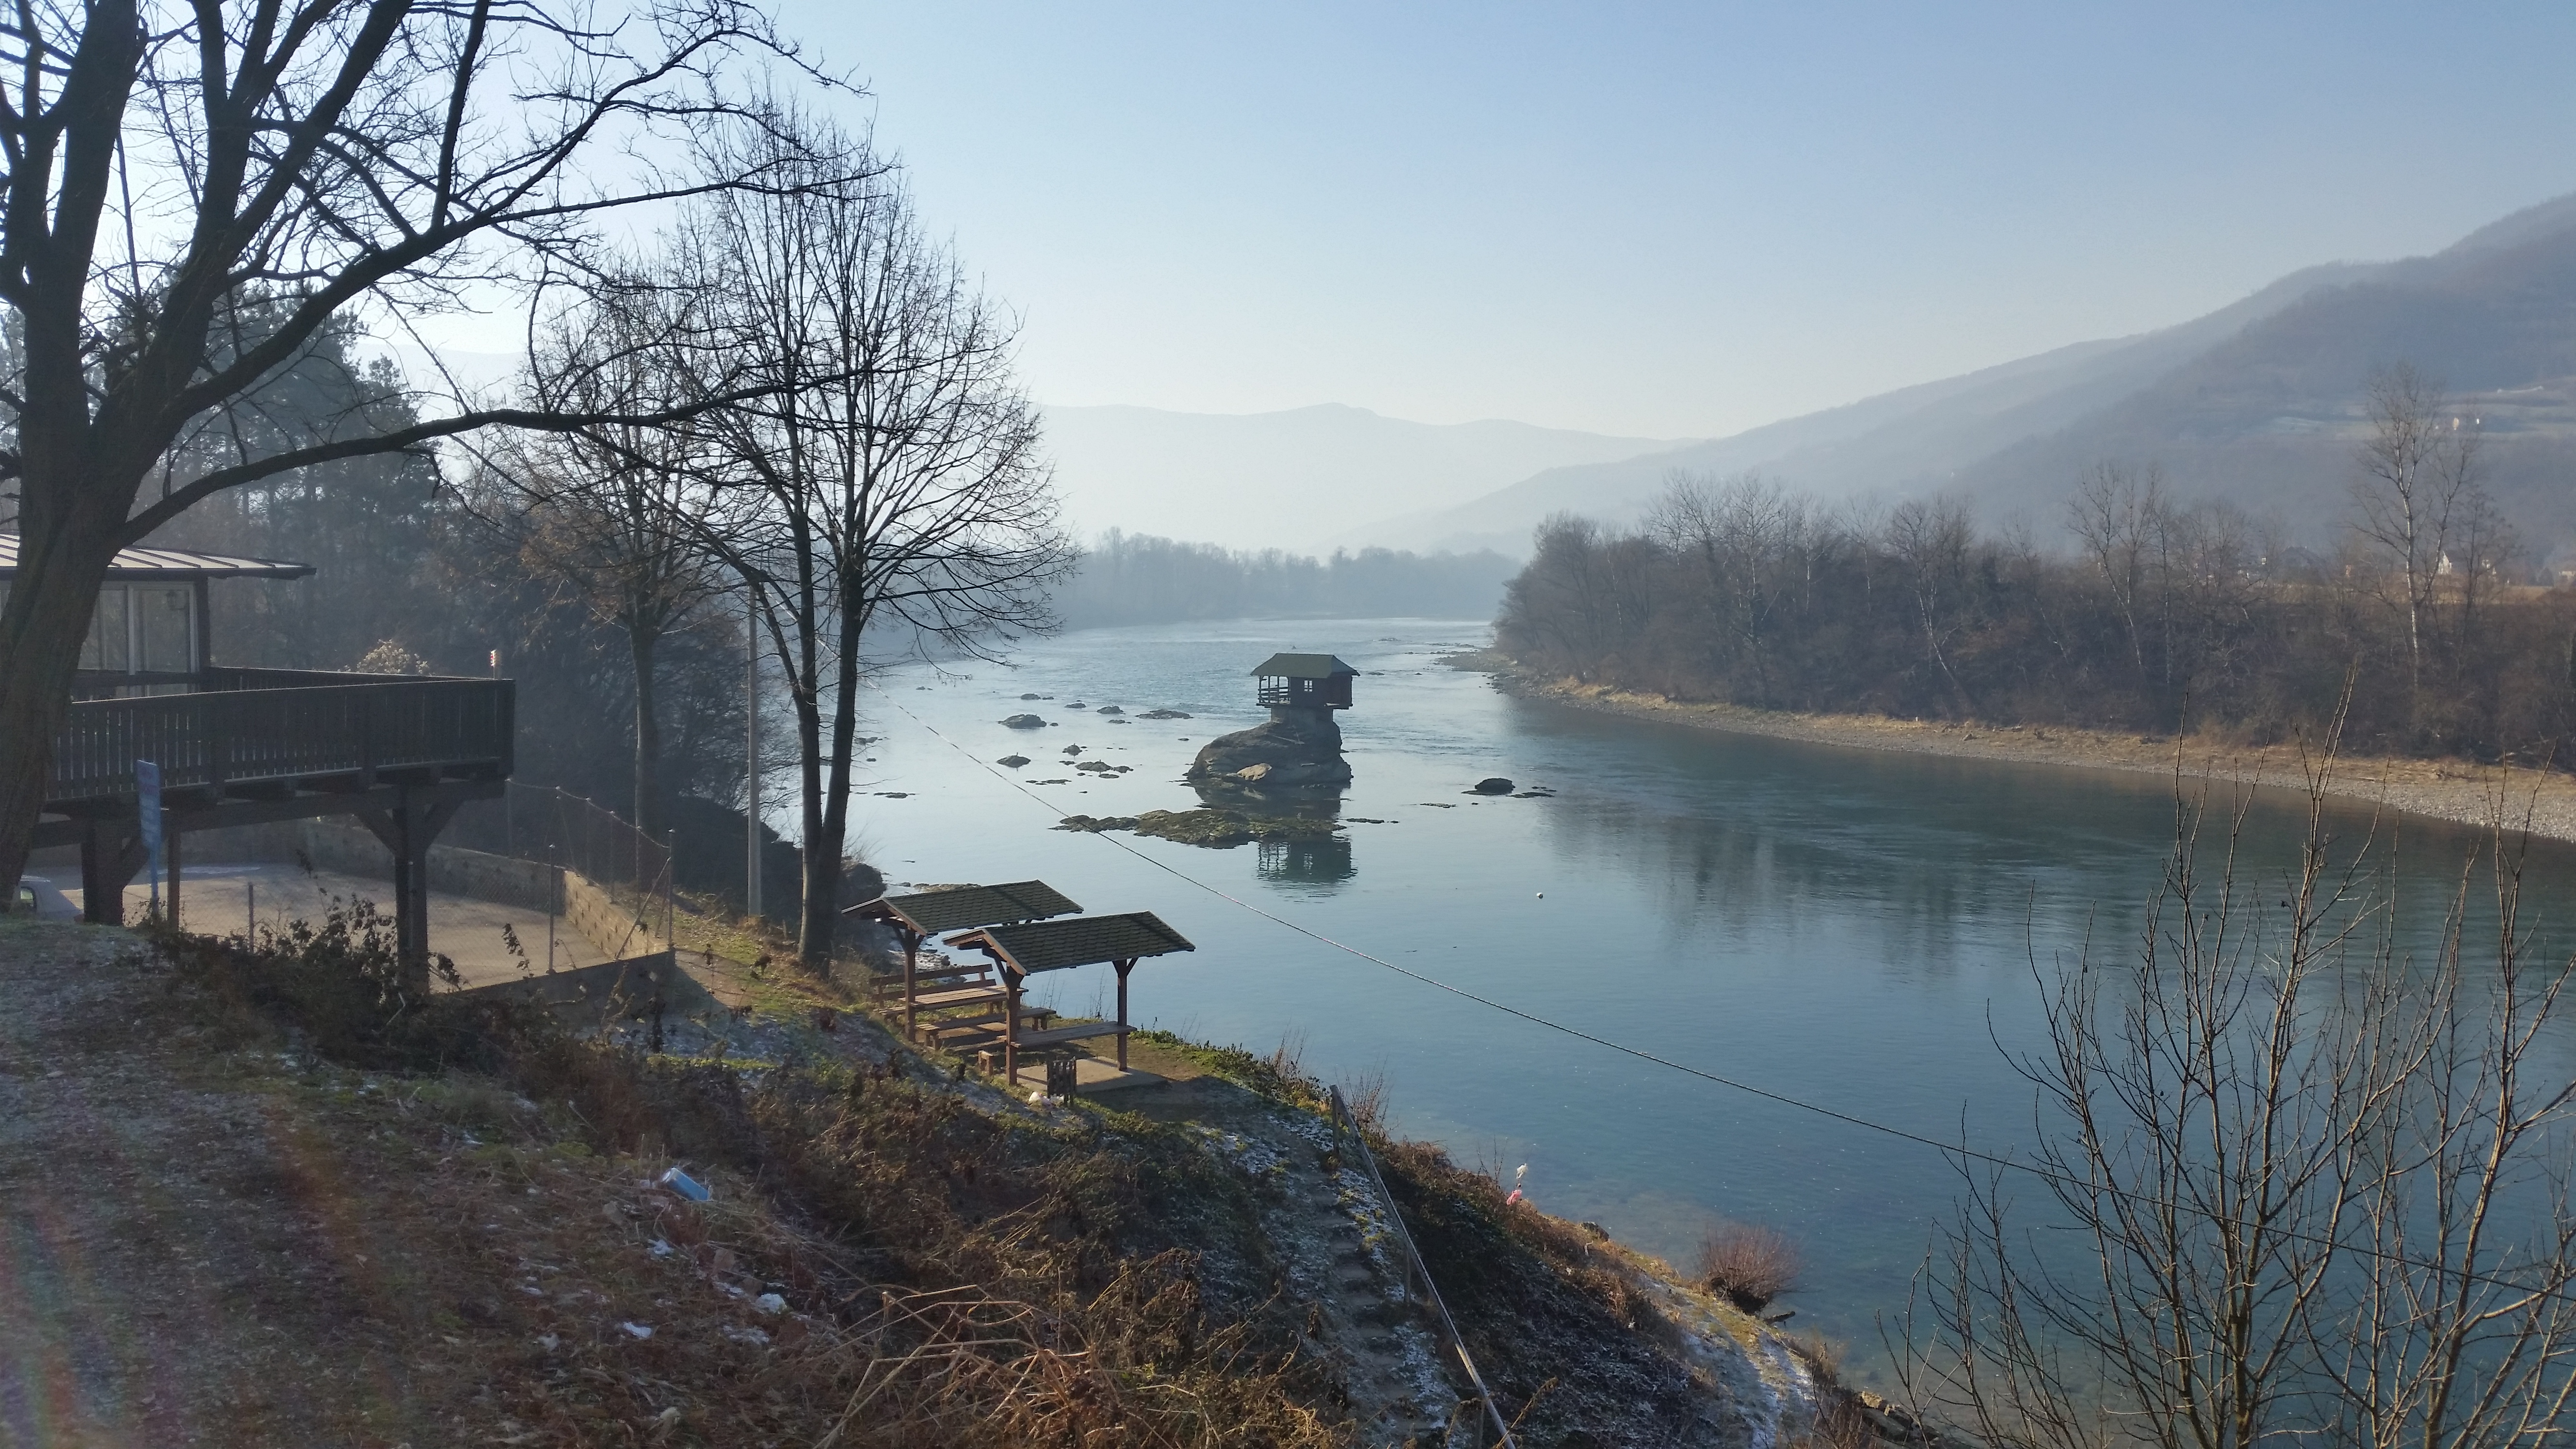 File:House On River Drina 2